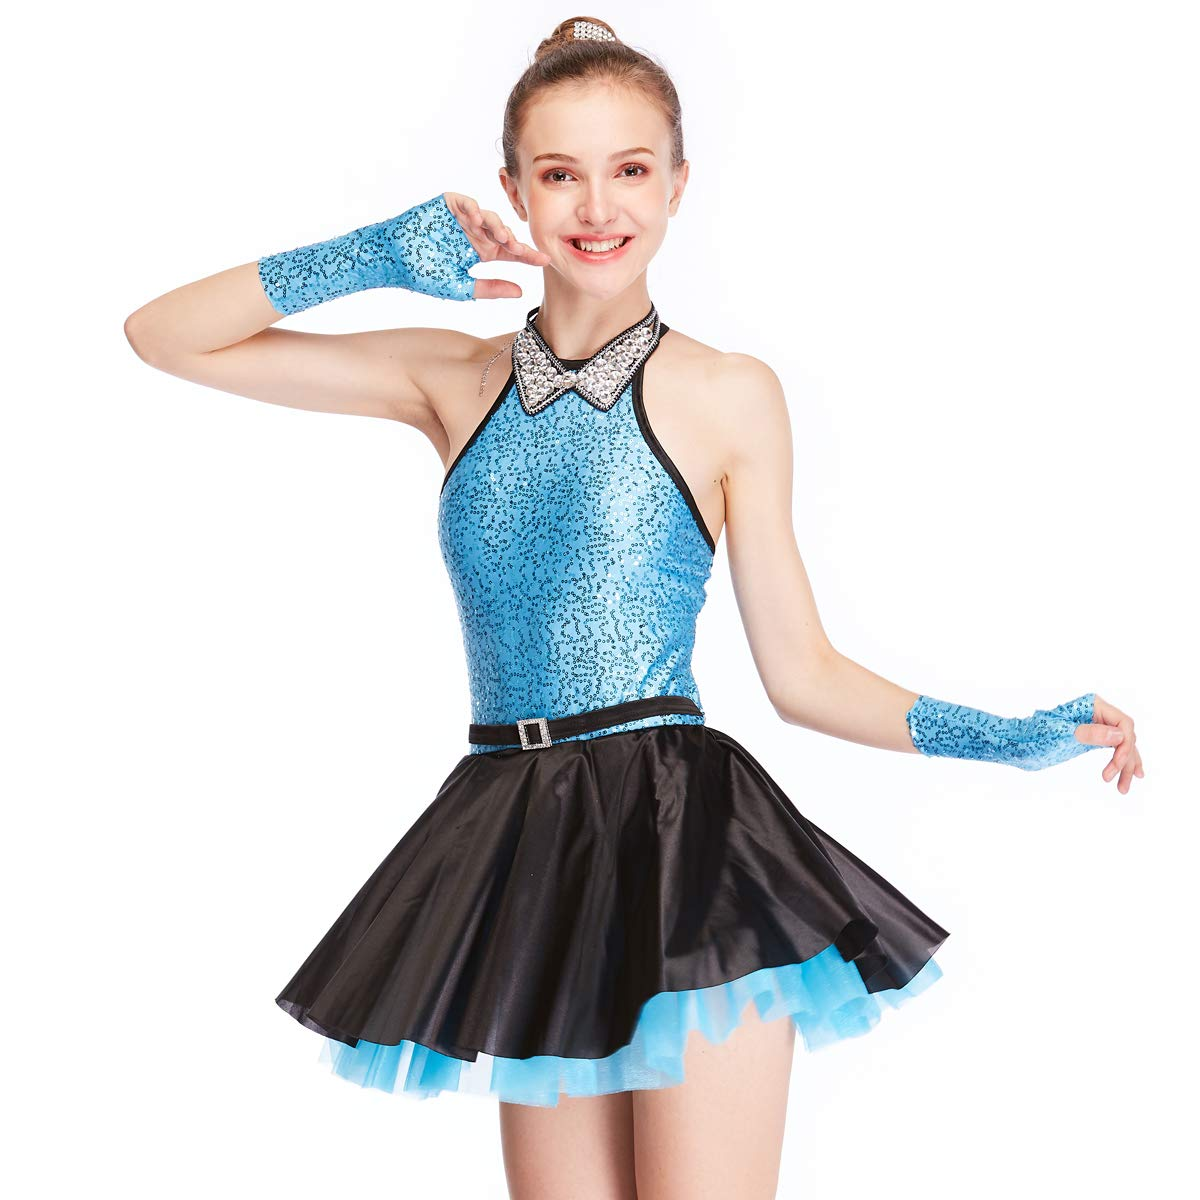 MiDee Jazz Dress Dance Costume High Neck with Sparkle Austria Rhinestones Collar (MC, Blue) by MiDee